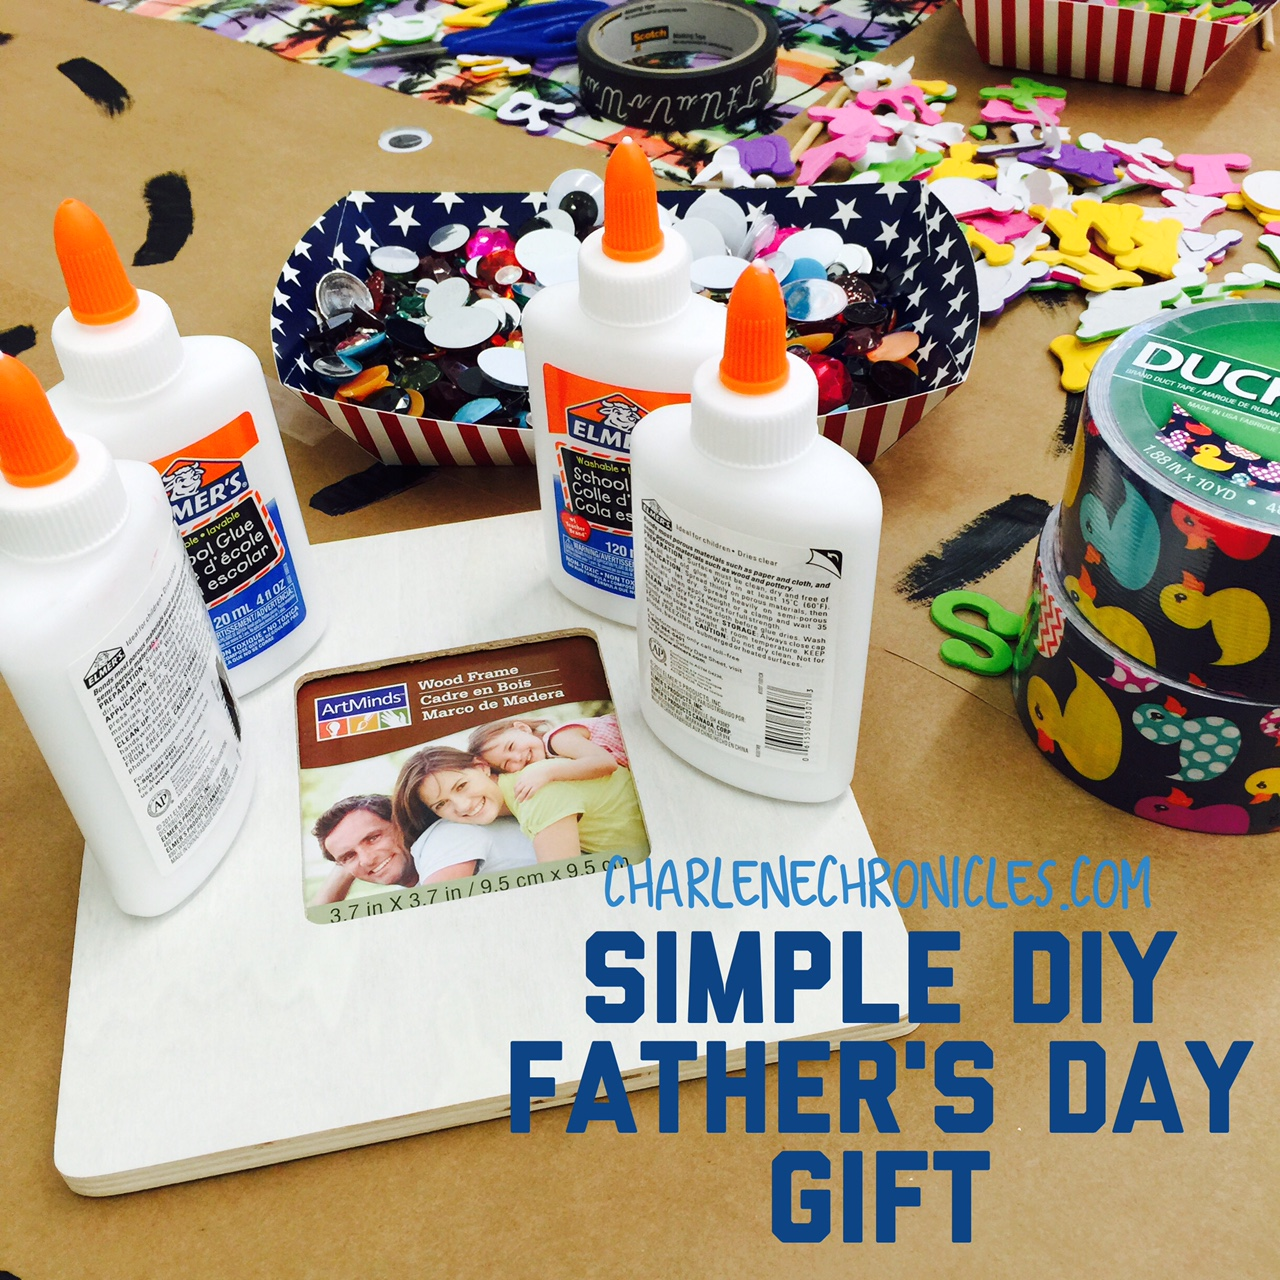 Simple DIY Father's Day Gift